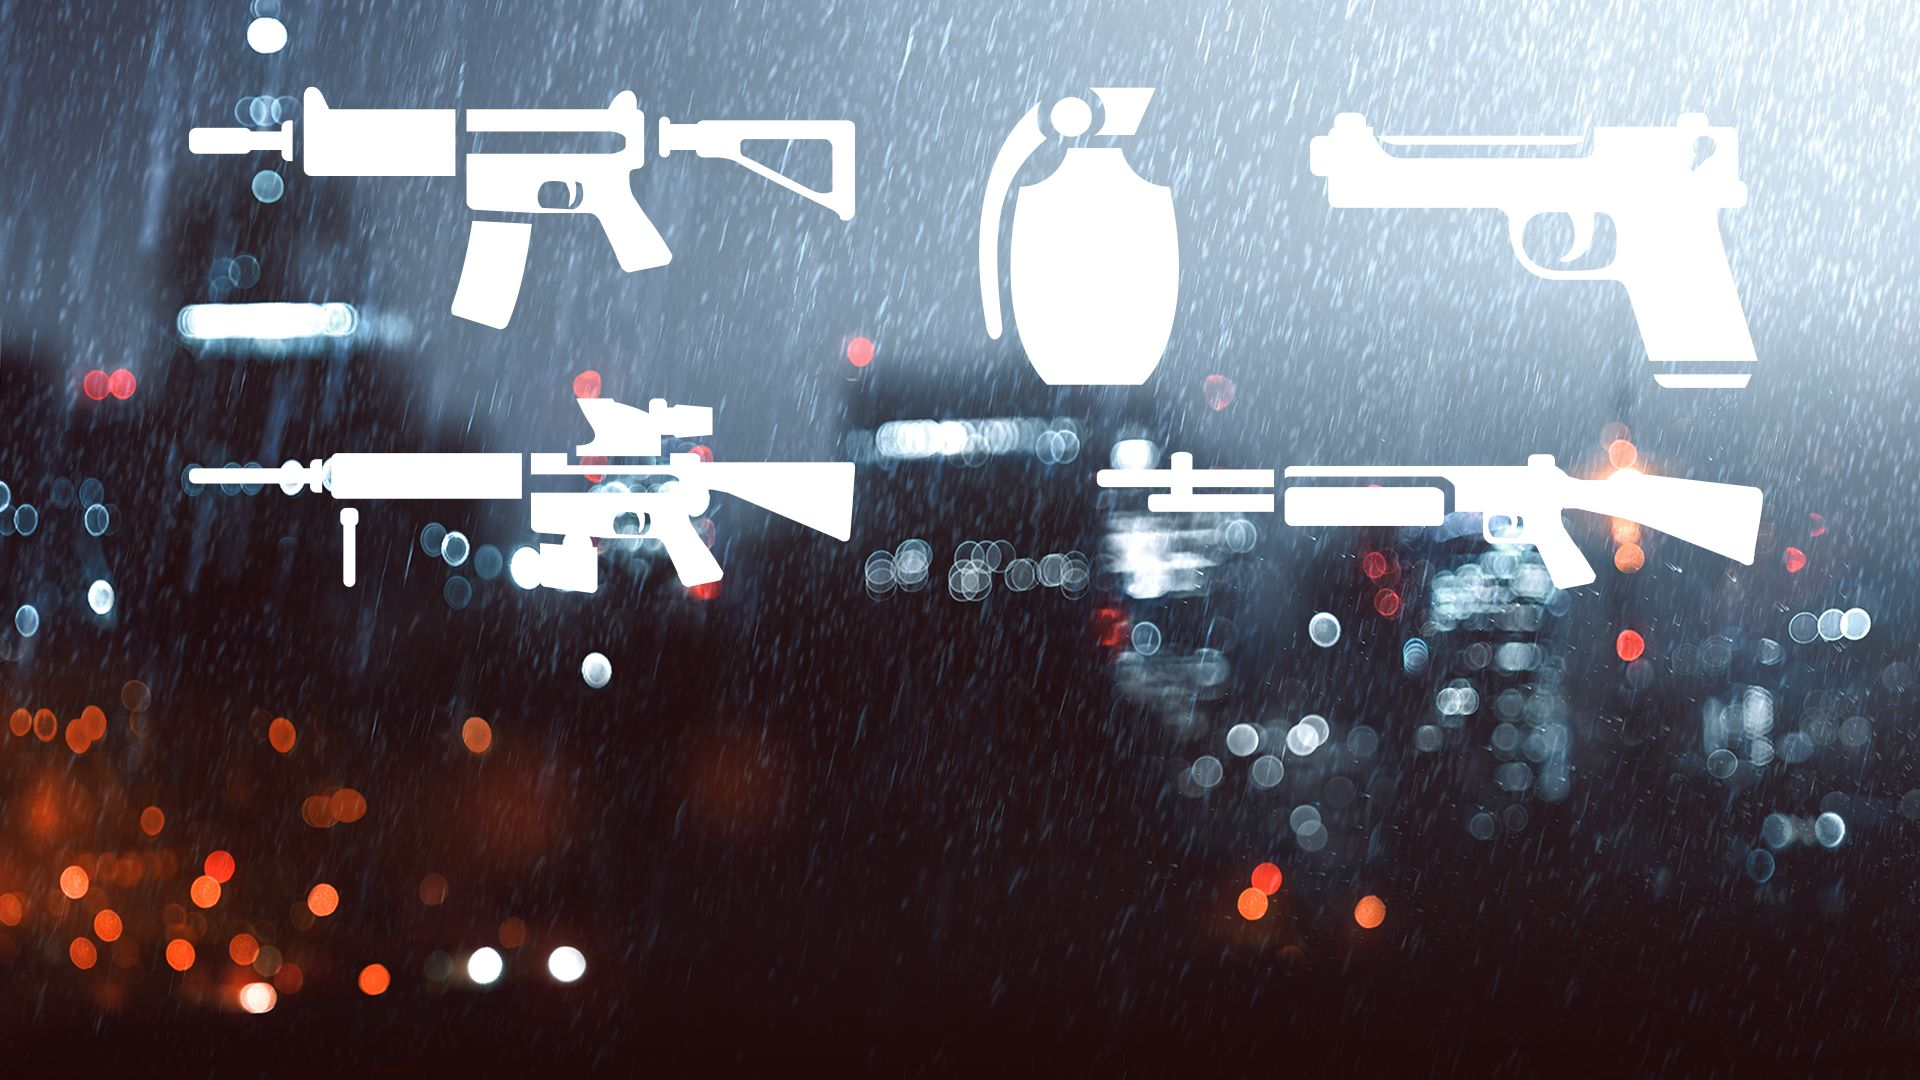 bf4 weapon unlocks